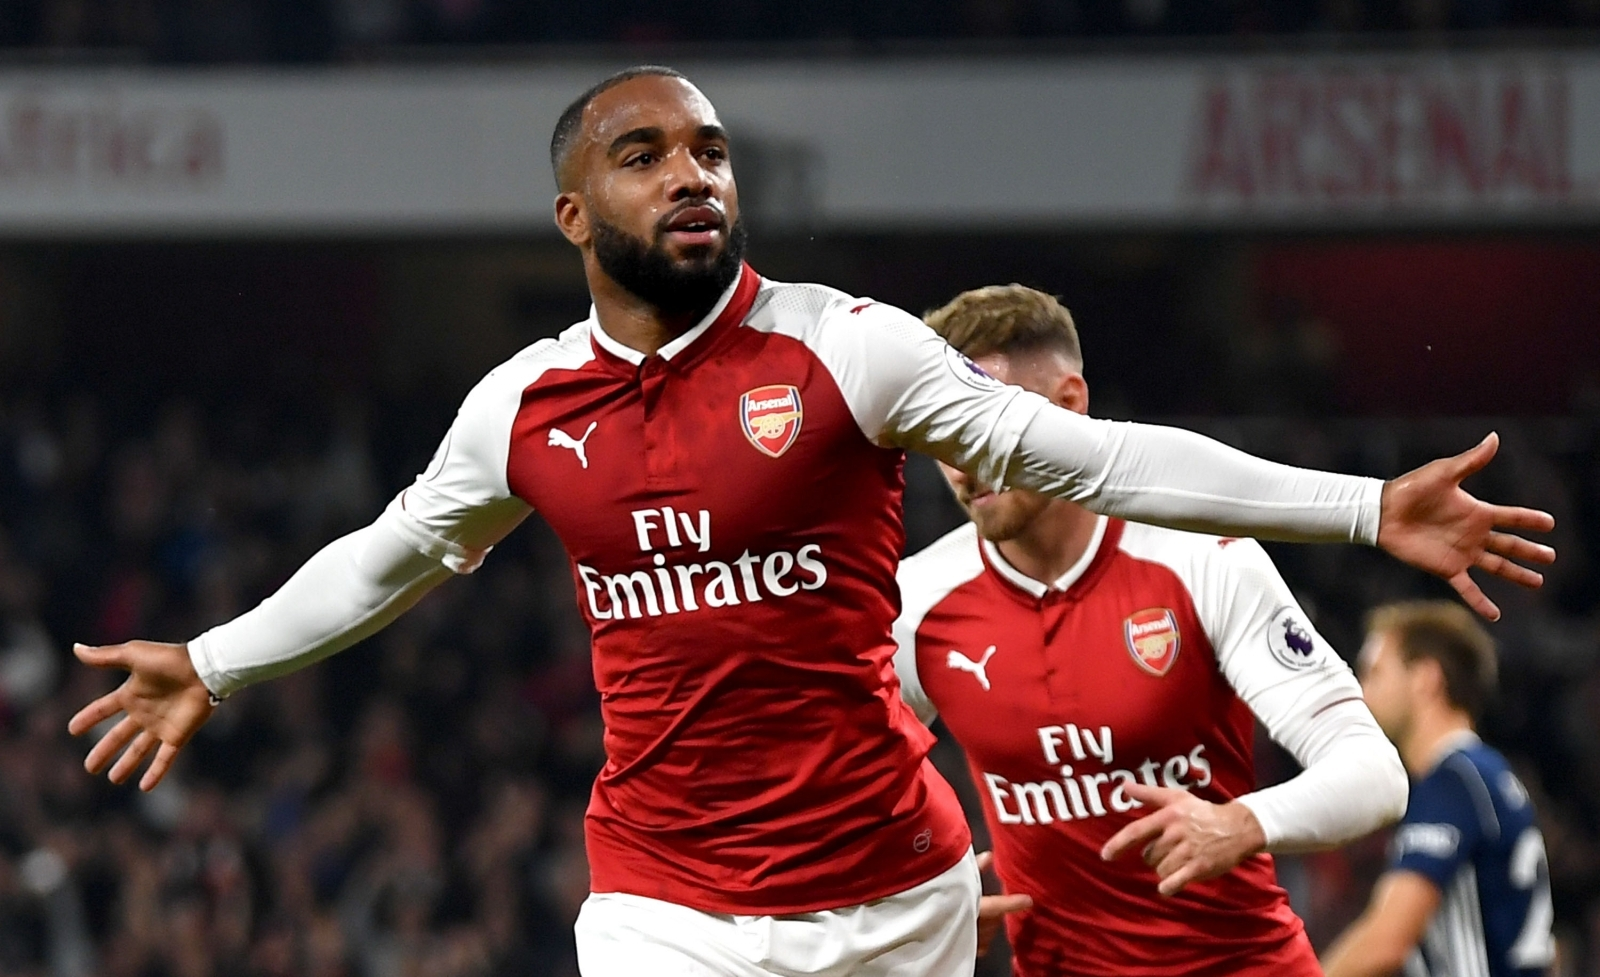 Lacazette: I Think Premier League Refereeing Can Be Dangerous